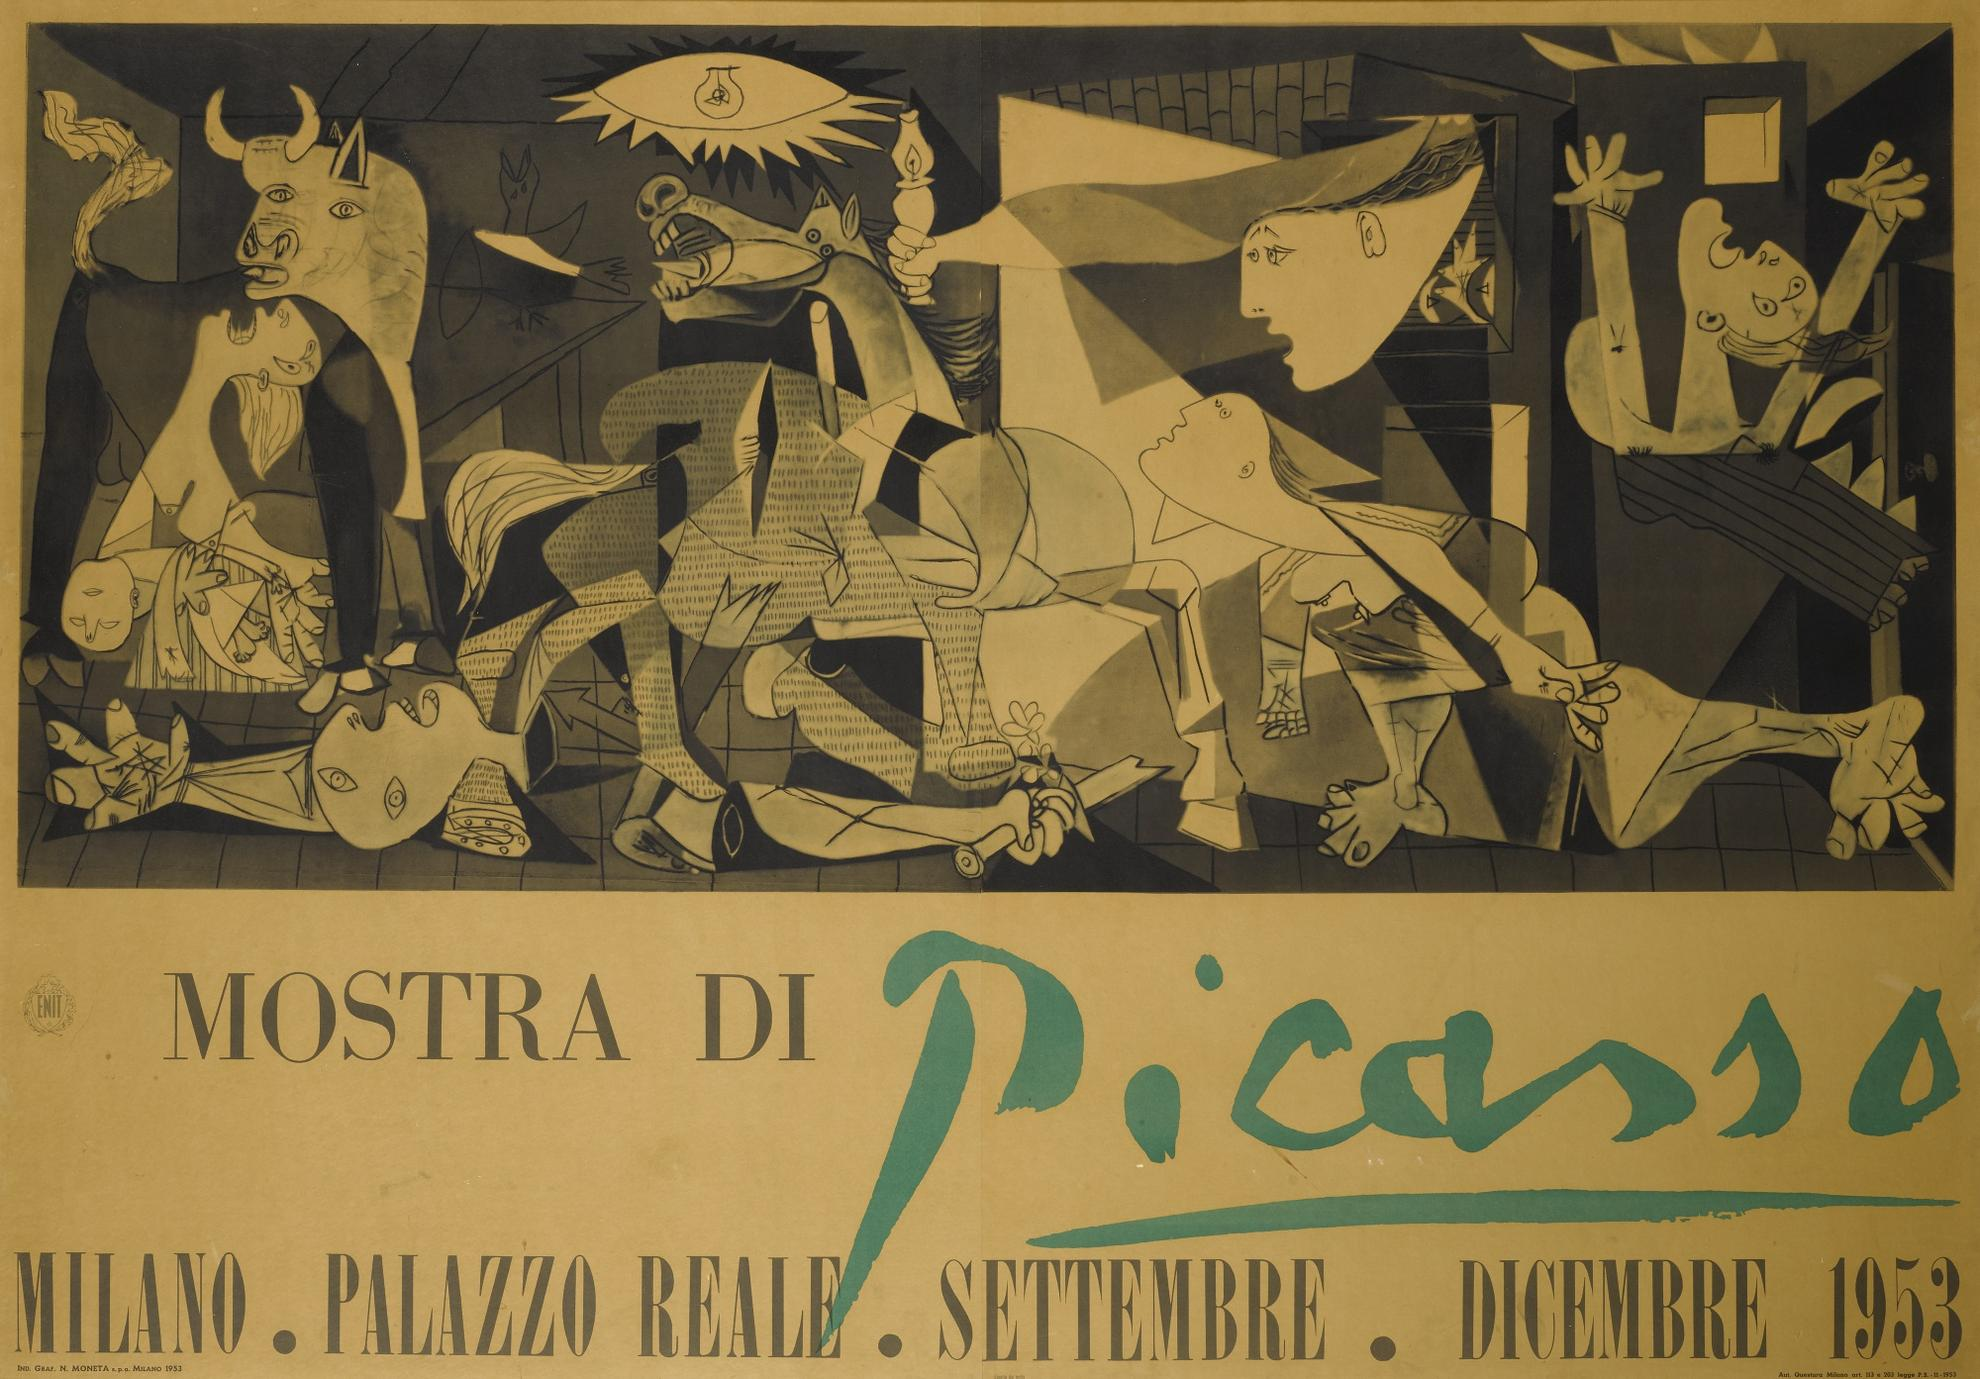 After Pablo Picasso - Mostra Di Picasso Guernica (Czwiklitzer 76); After Fernand Leger, Untitled (Saphire e3)-1953